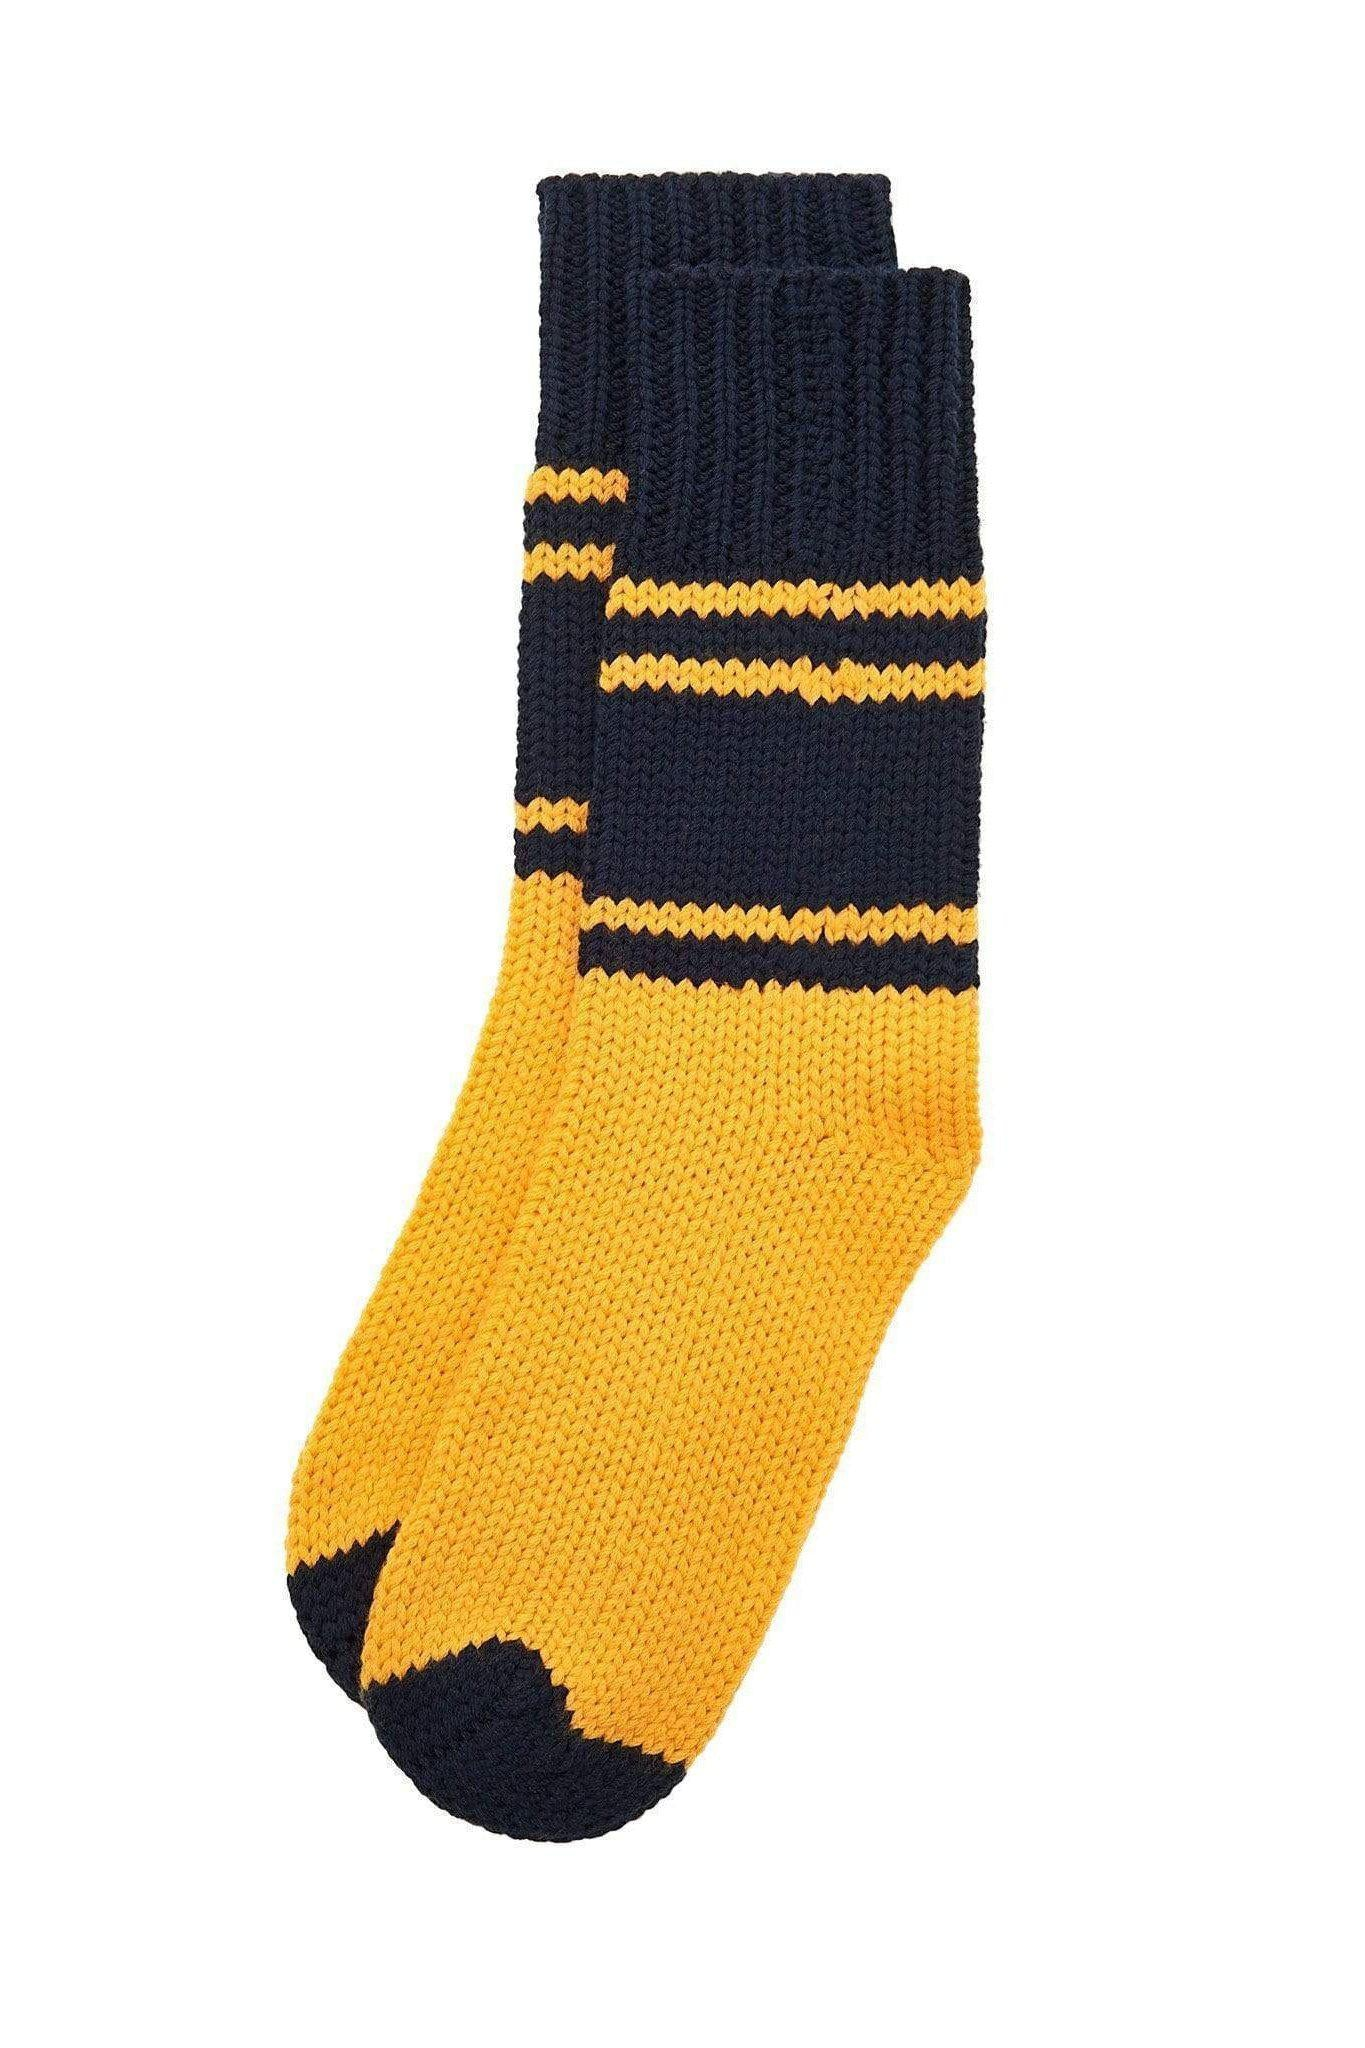 KOMODO sock CABIN Socks in Merino Wool. sustainable fashion ethical fashion